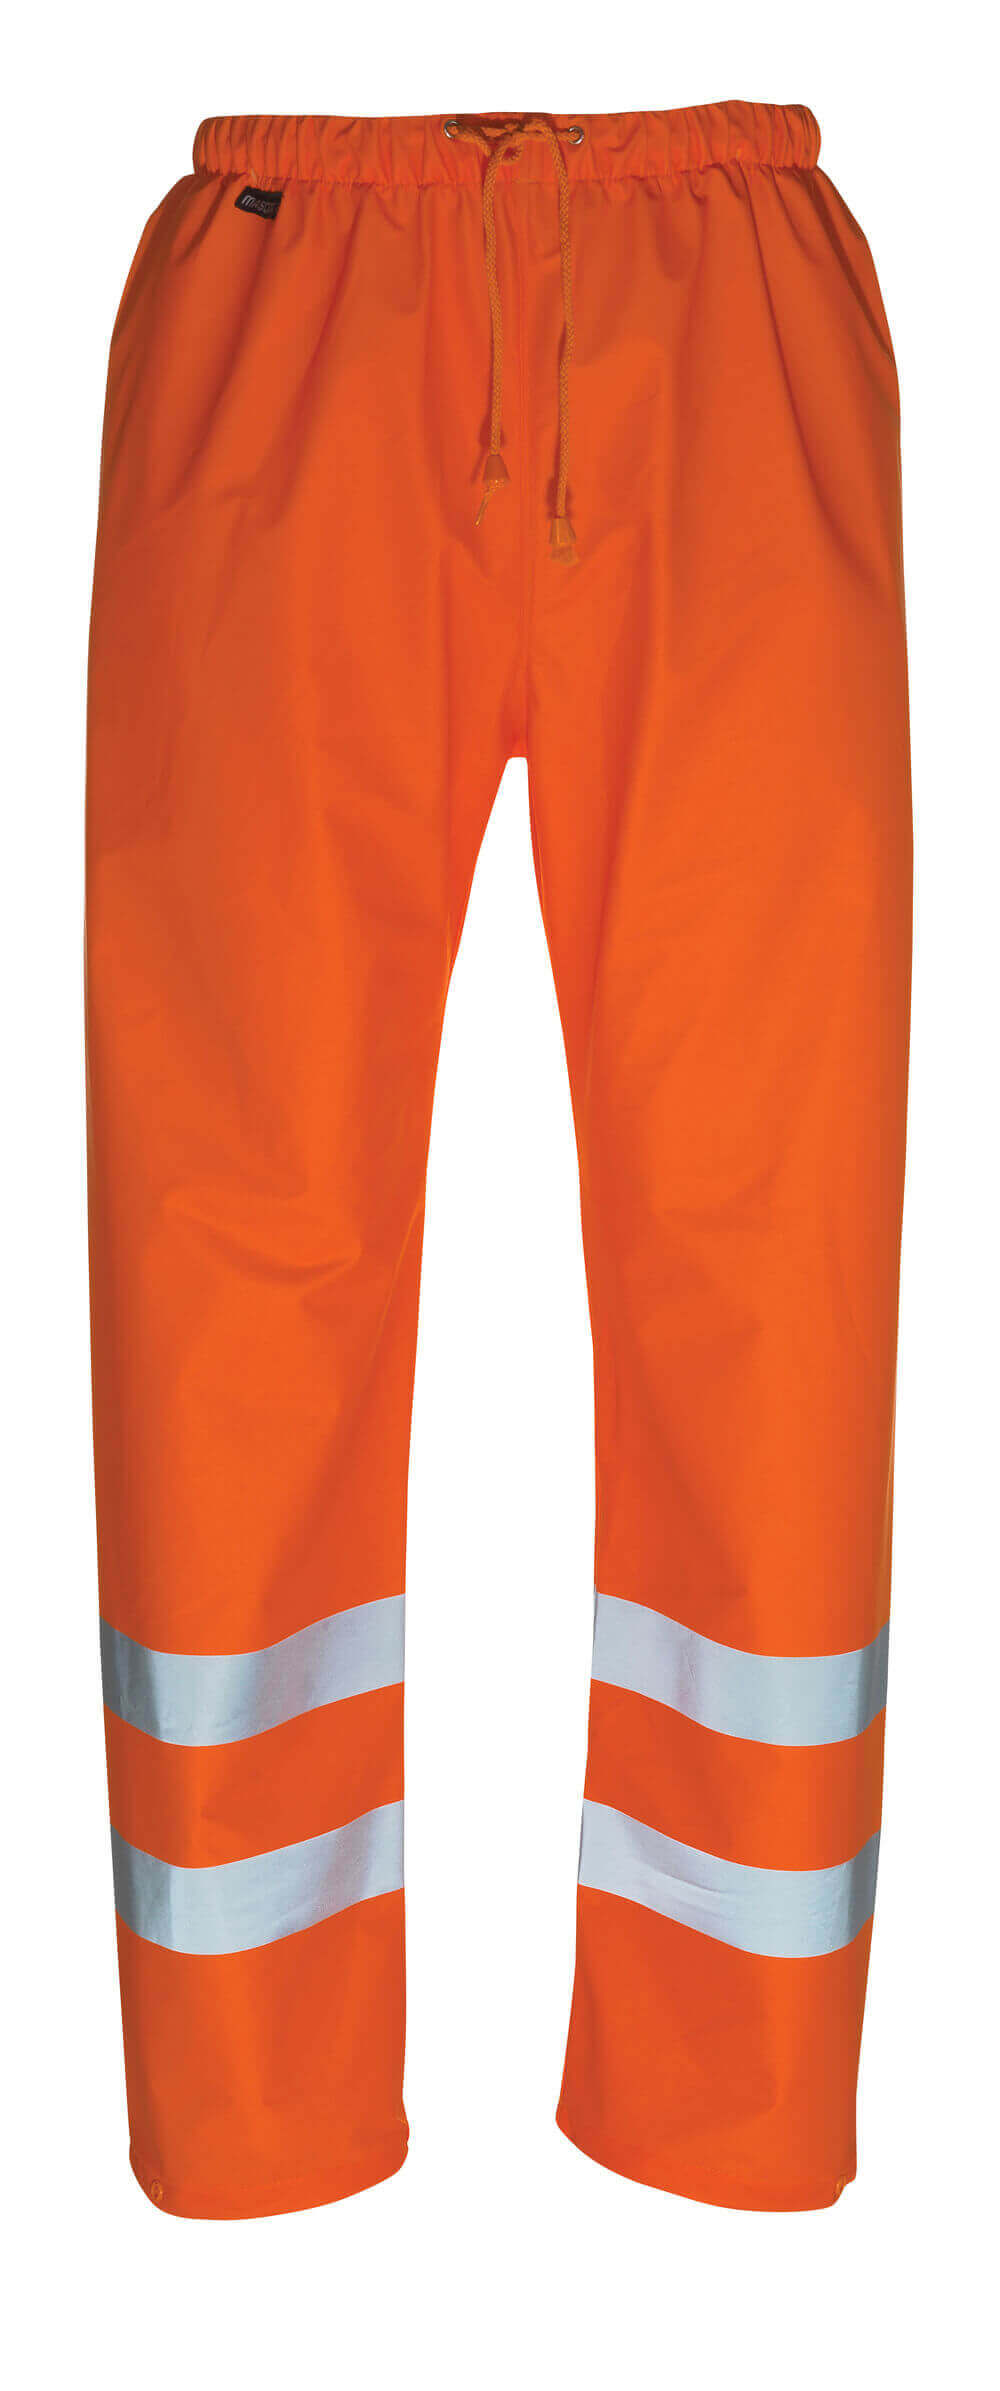 50102-814-14 Regenhose - hi-vis Orange